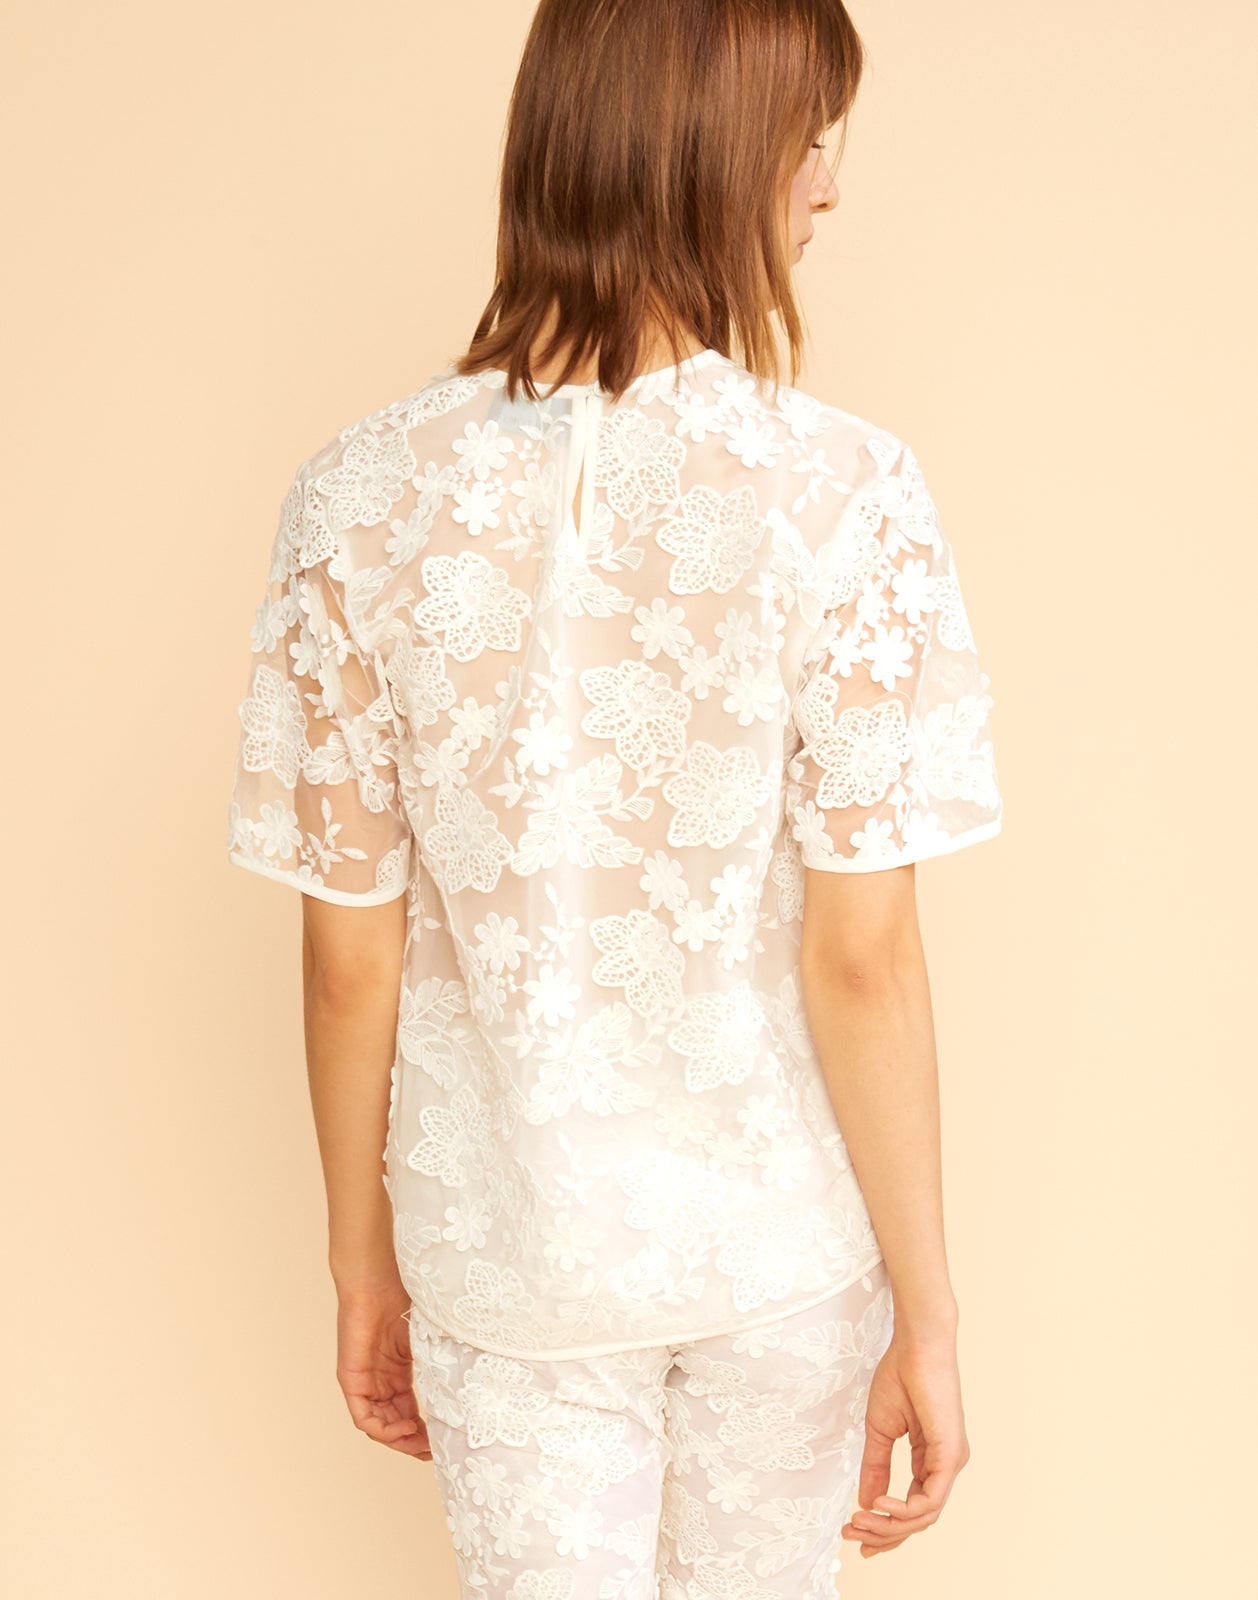 Back view of sheer floral lace tee.